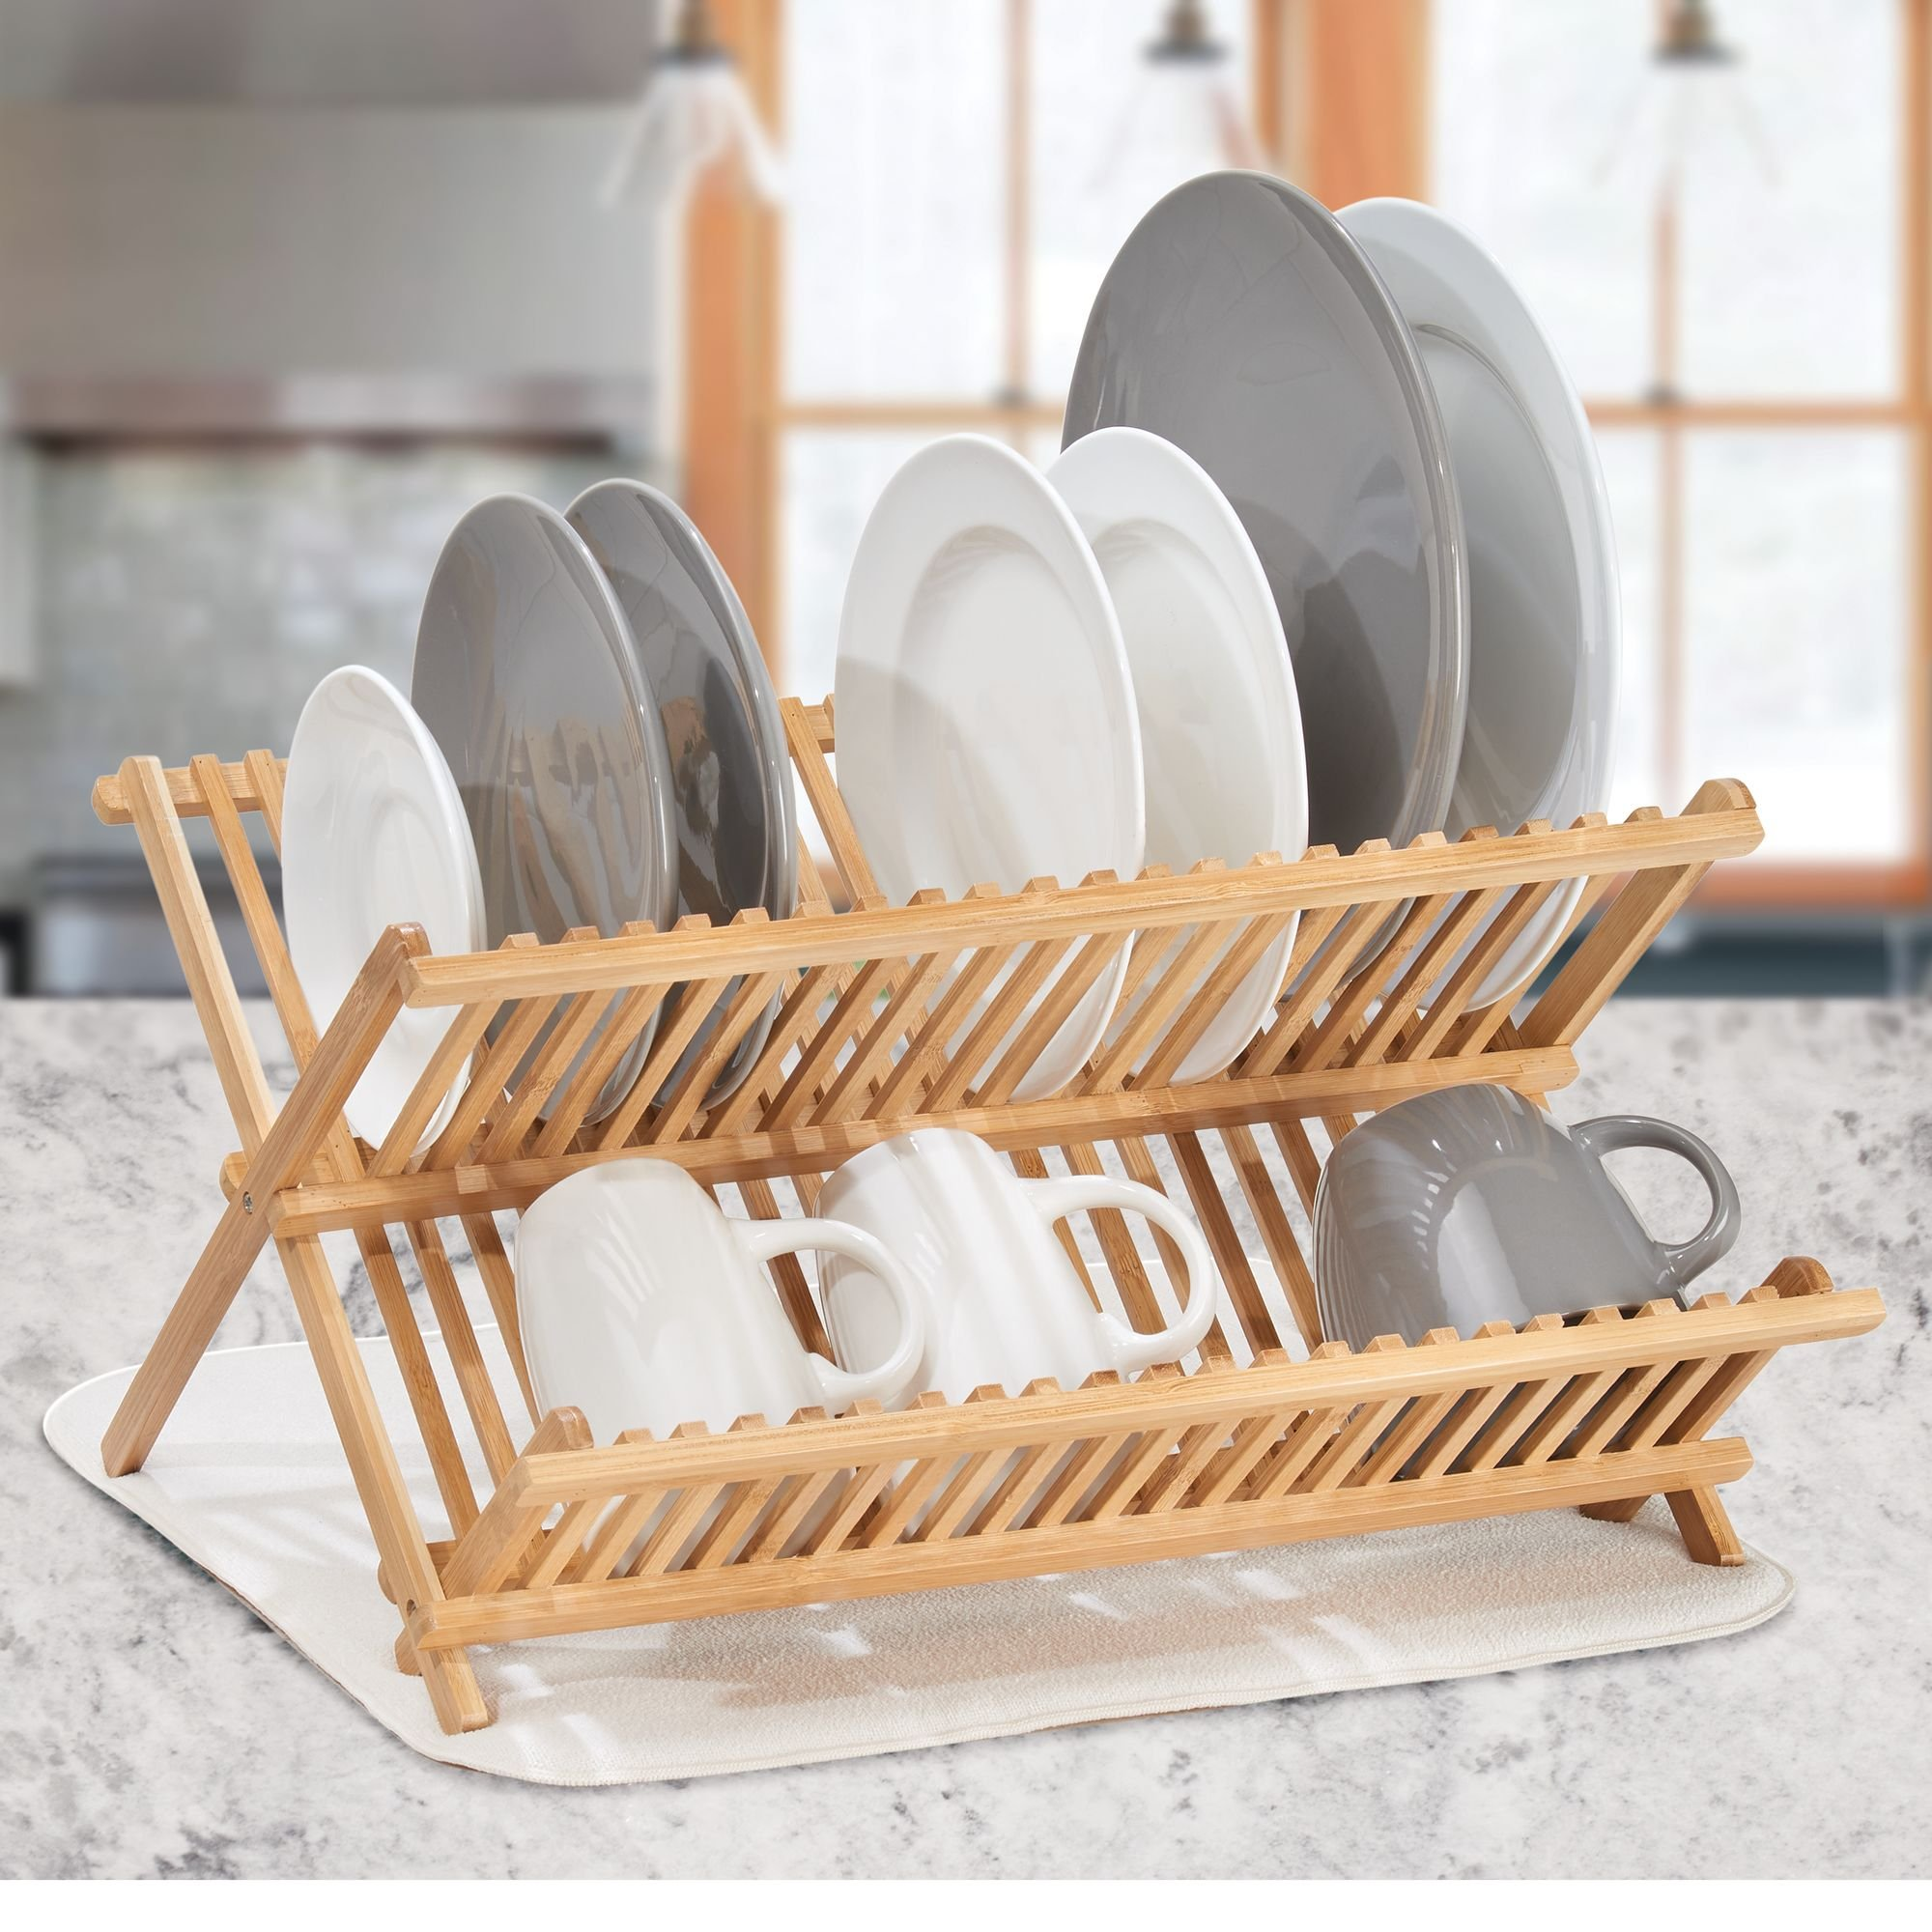 mDesign Bamboo Kitchen Countertop, Sink Dish Drying Rack � Extra Large Capacity, 2 Tiers - Foldable and Collapsible, 100% Bamboo Wood, Natural Light Wood by mDesign (Image #2)